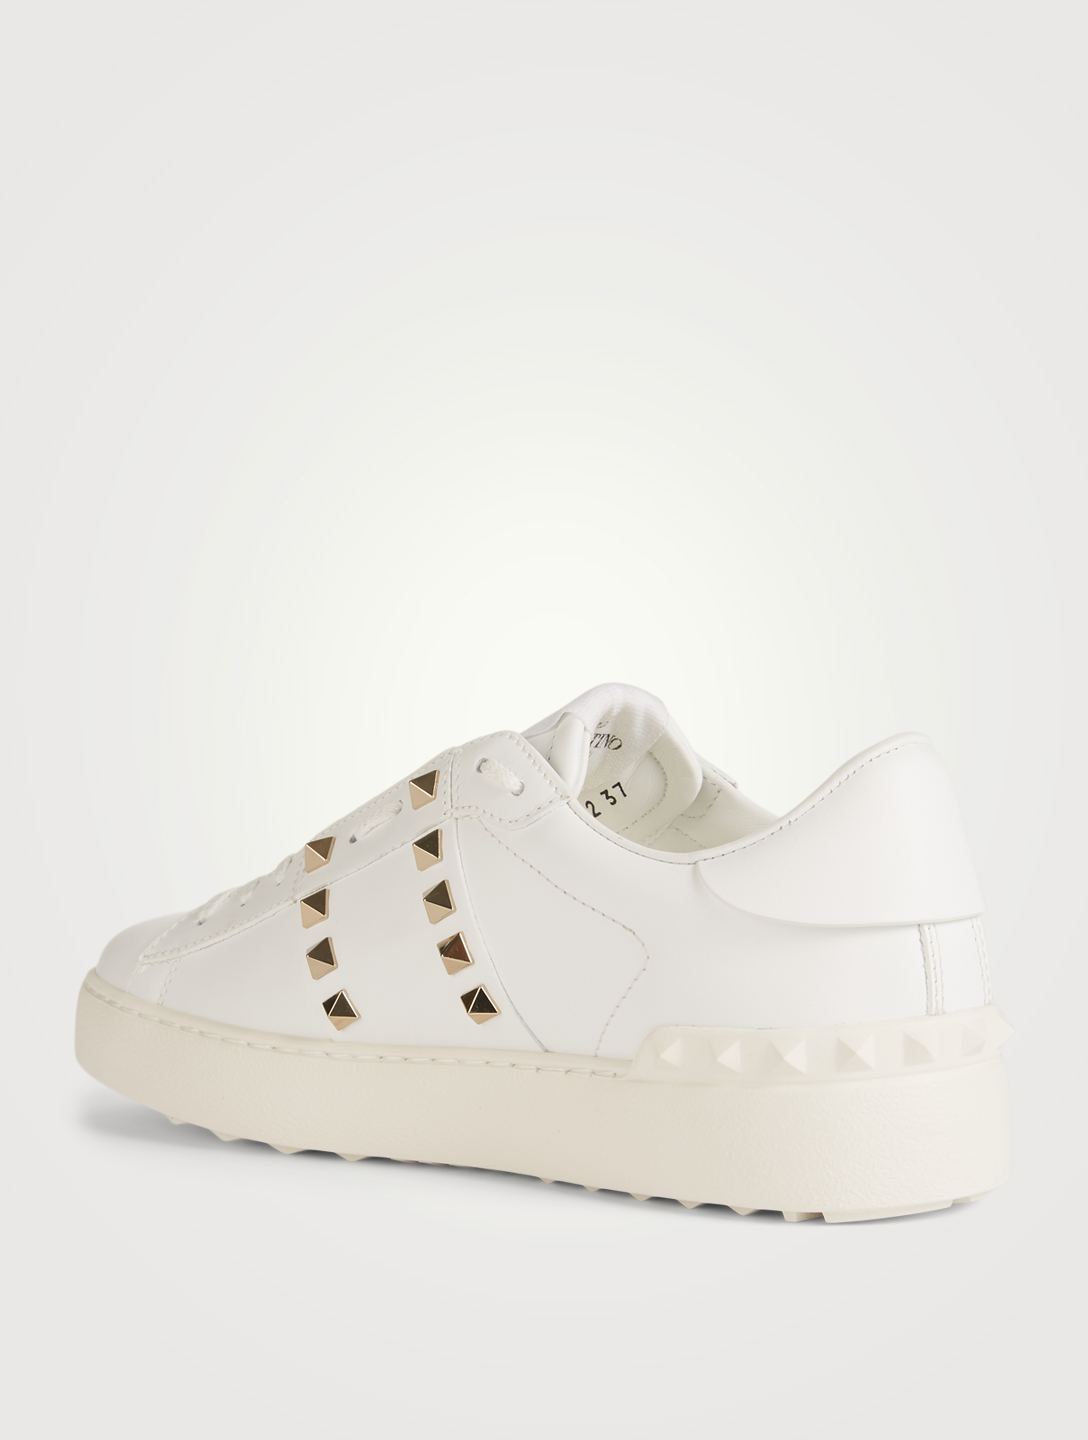 VALENTINO GARAVANI Rockstud Untitled Leather Open Sneakers Women's White